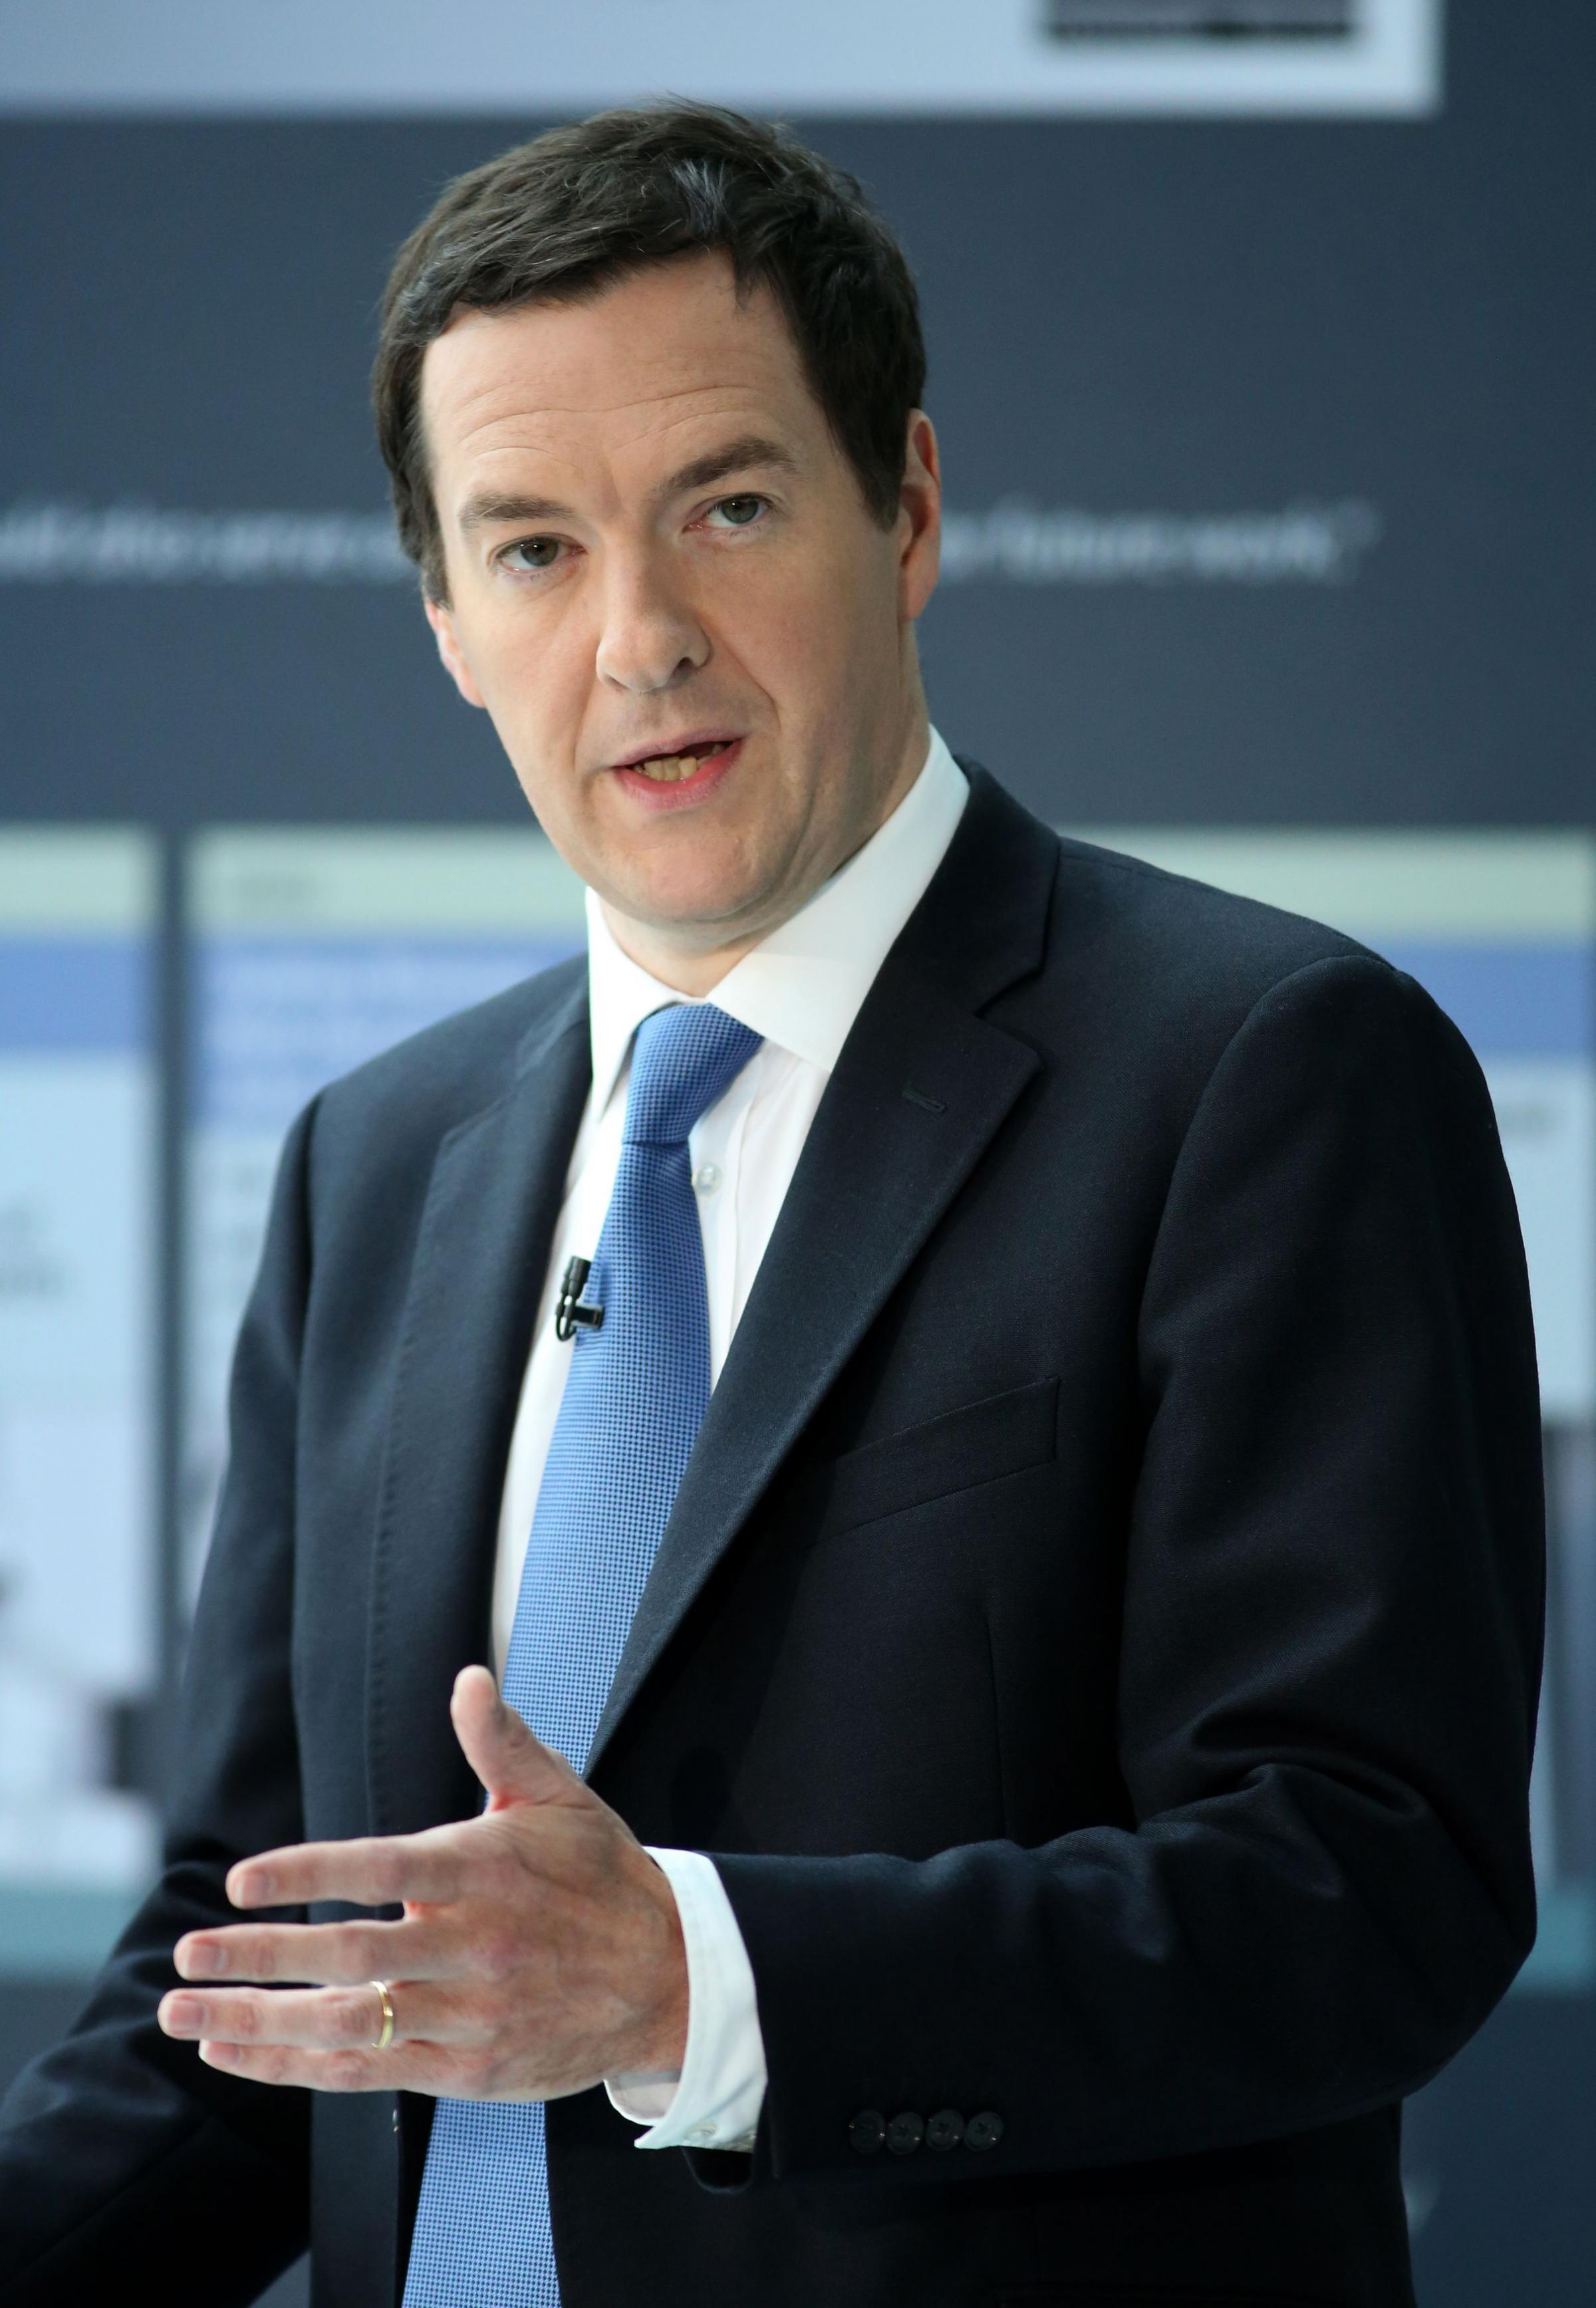 George Osborne meets the Chancellor of the Exchequer in Taunton - yes, it's true